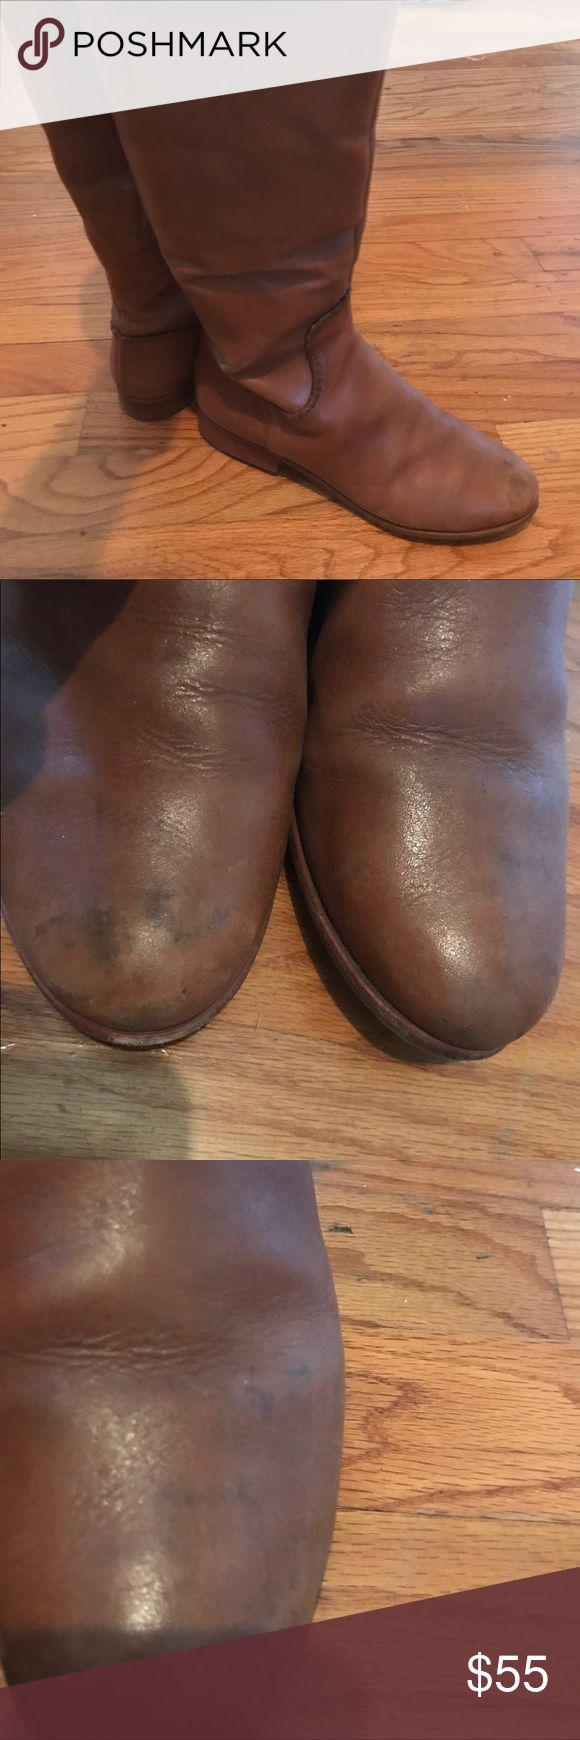 Jack rogers riding boots Great condition. Some scuffs that are shown in photo Jack Rogers Shoes